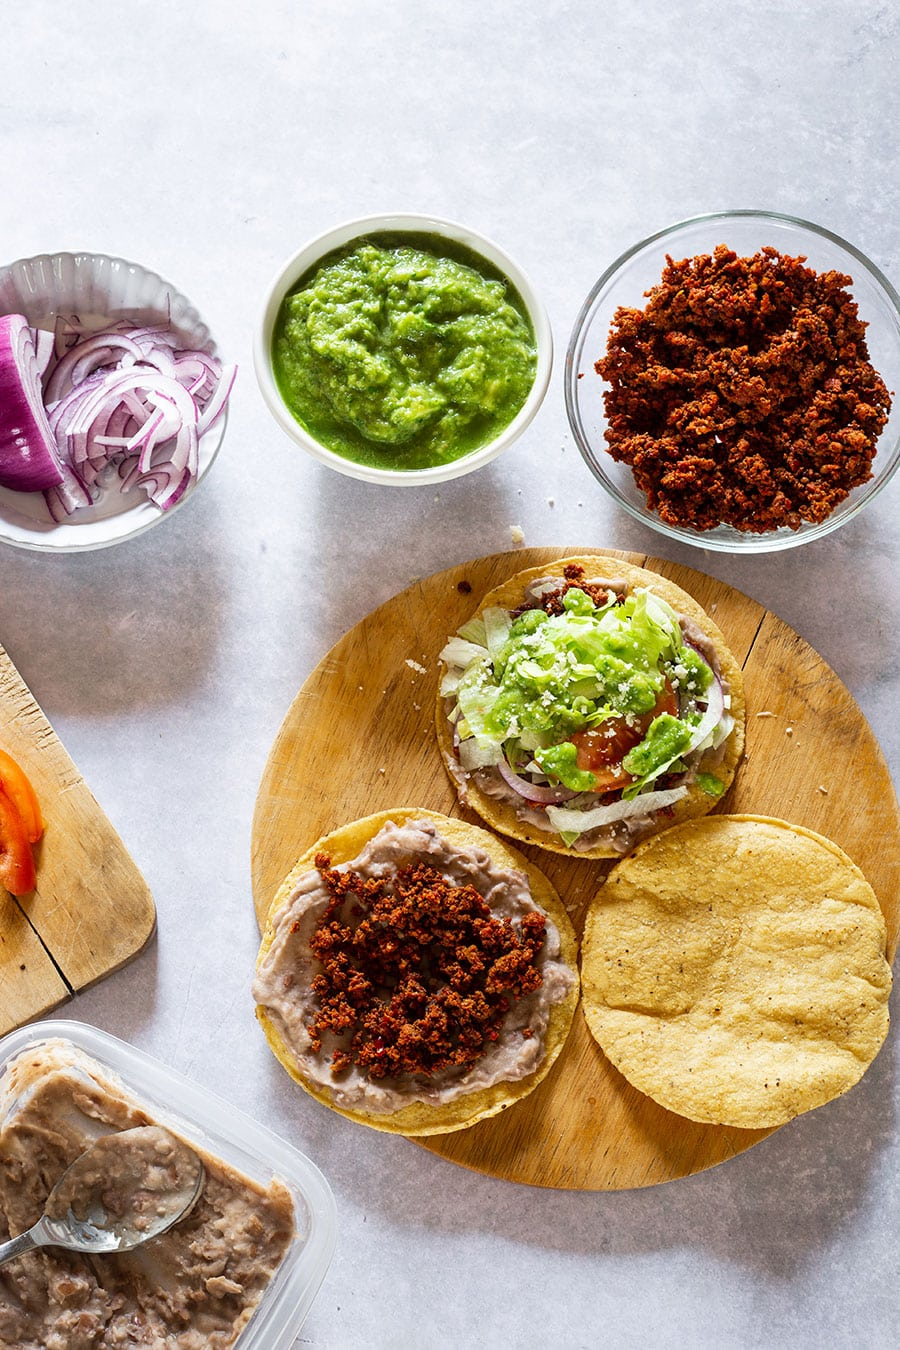 3 tostadas on a cutting board prepared with some ingredients.